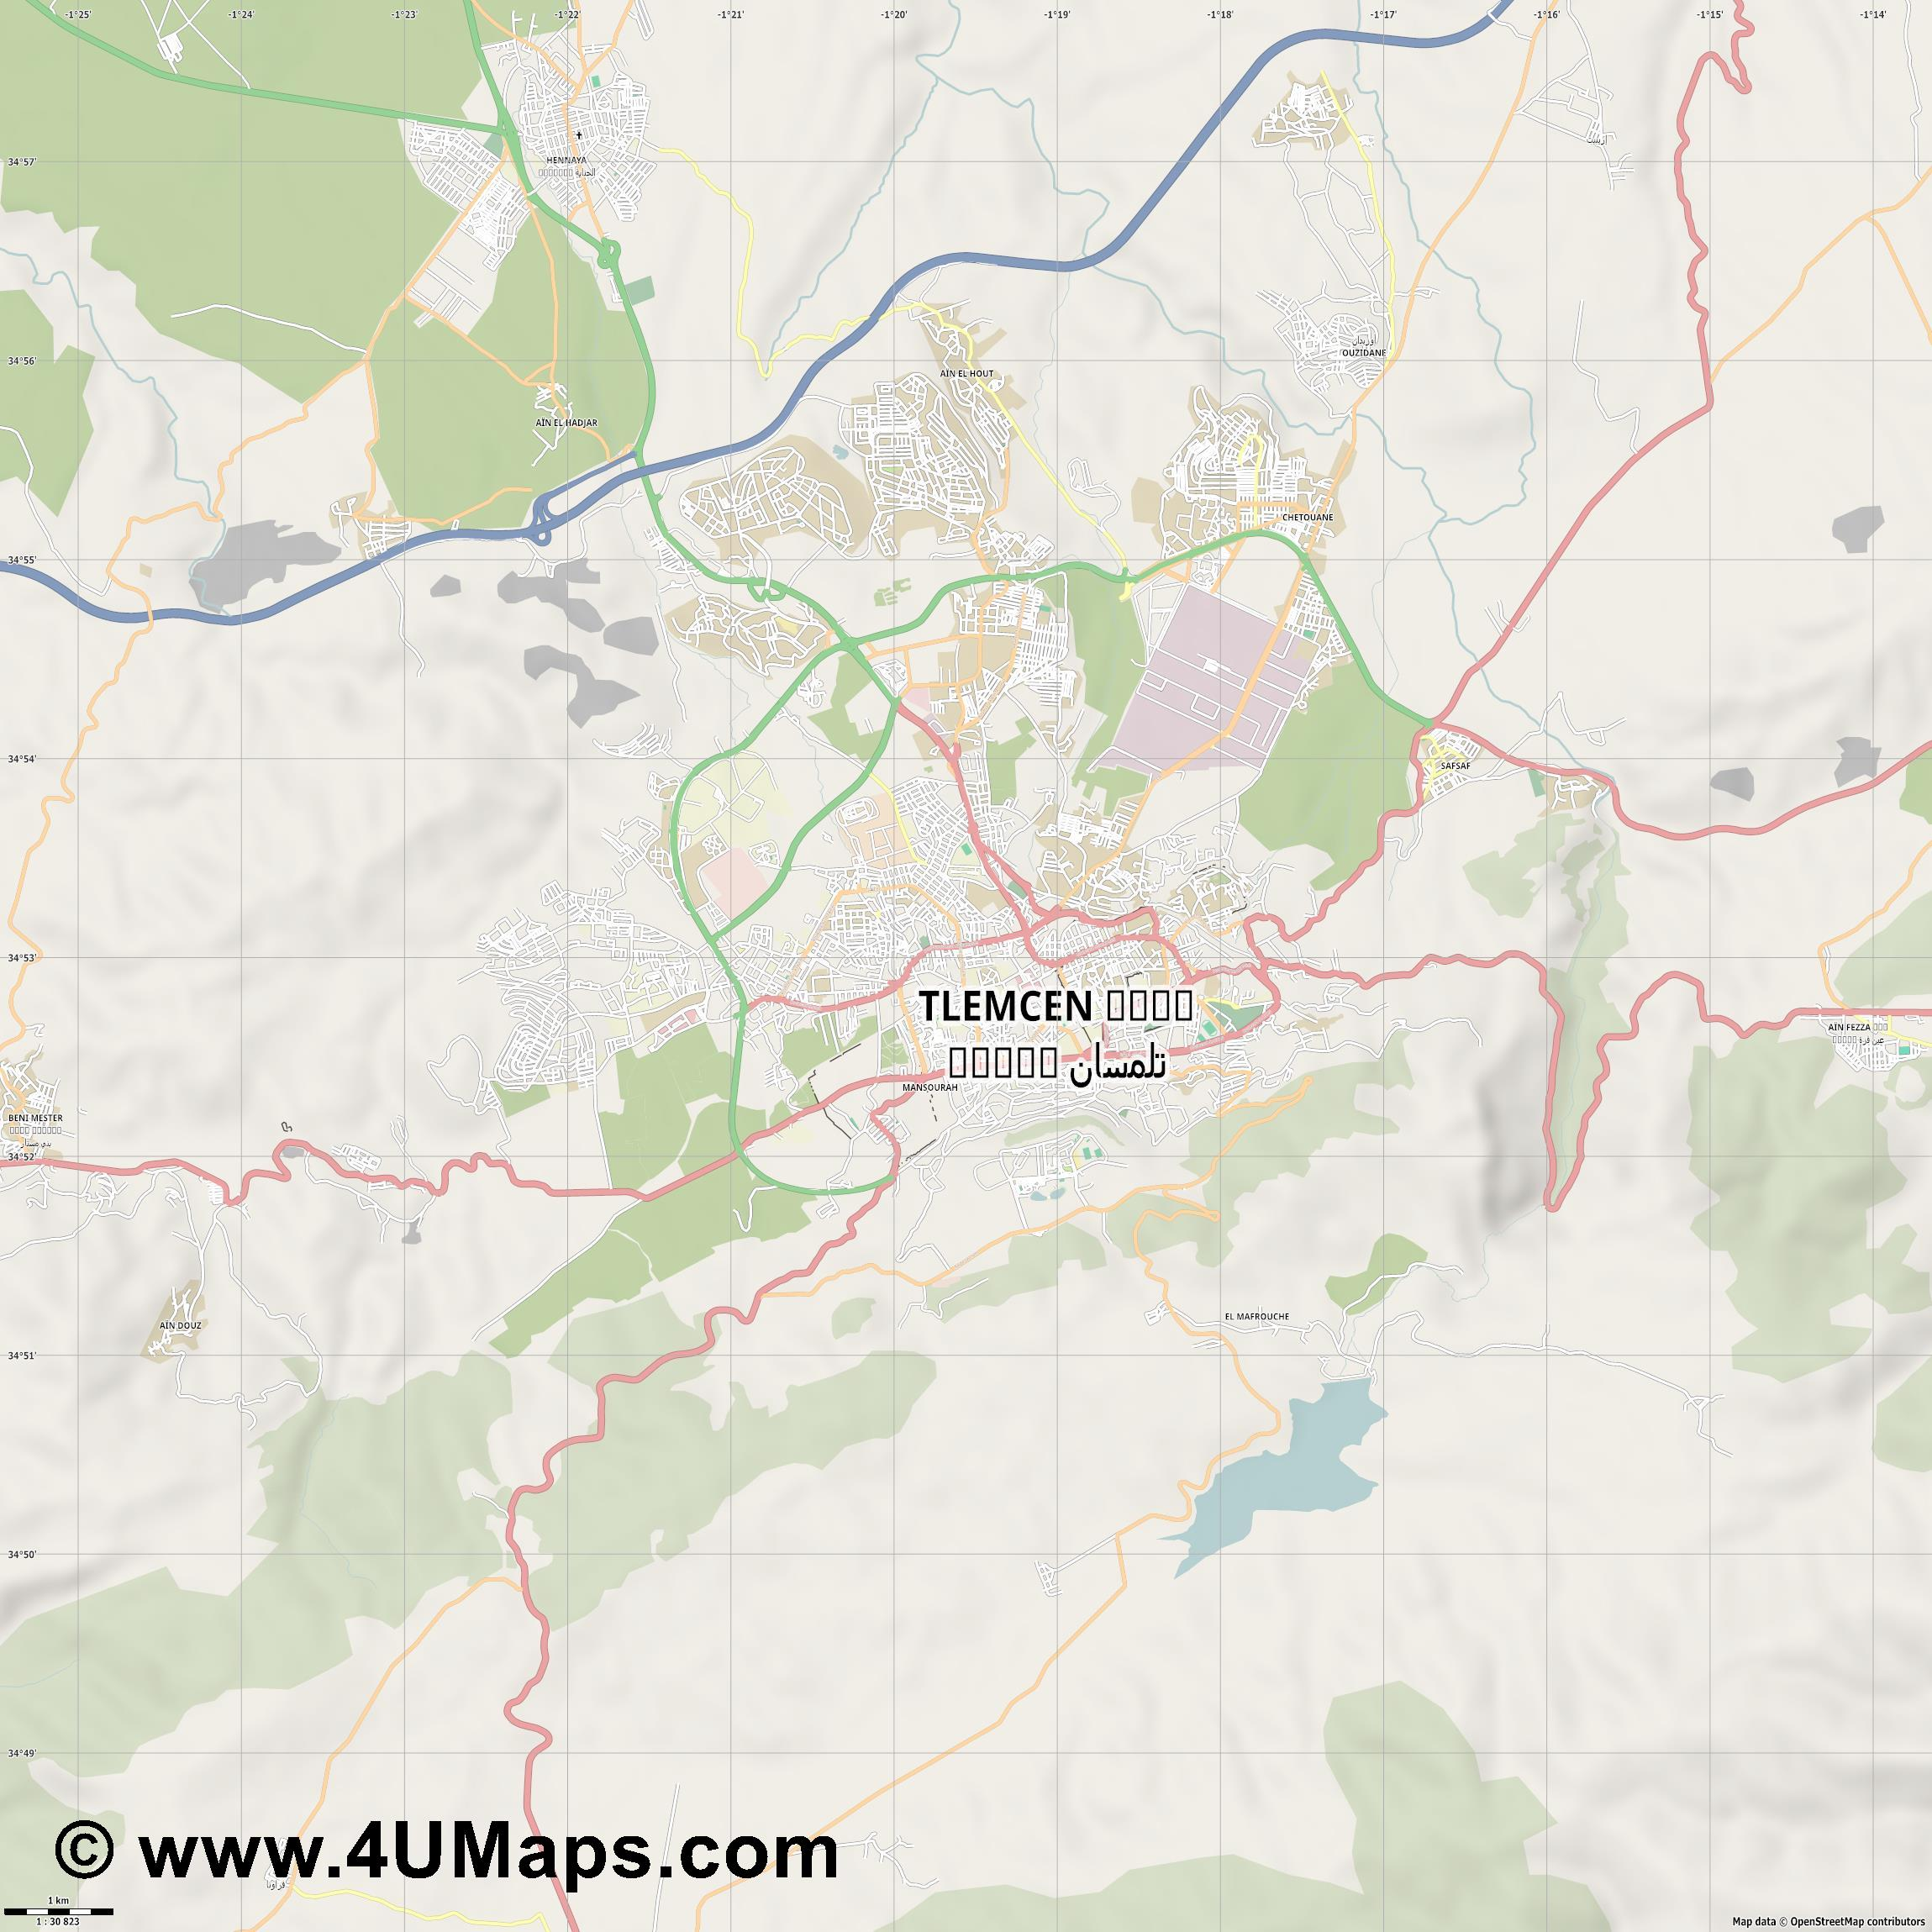 Tlemcen تلمسان  jpg high detail, large area preview vector city map